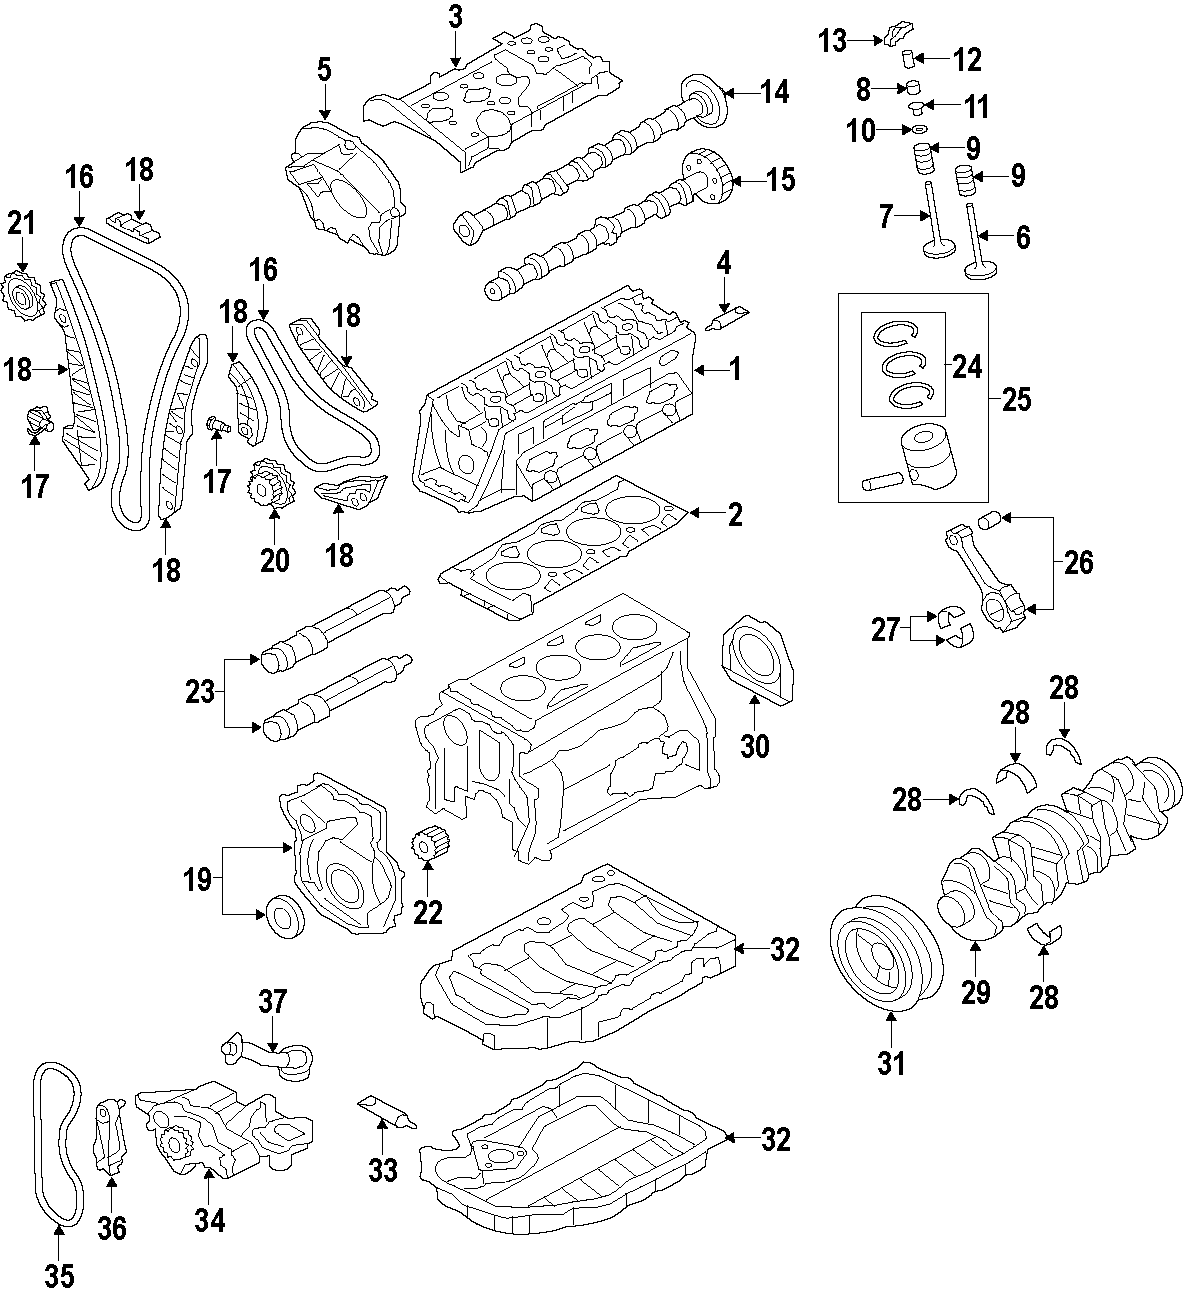 Volkswagen Tiguan Engine Timing Chain Guide Guide